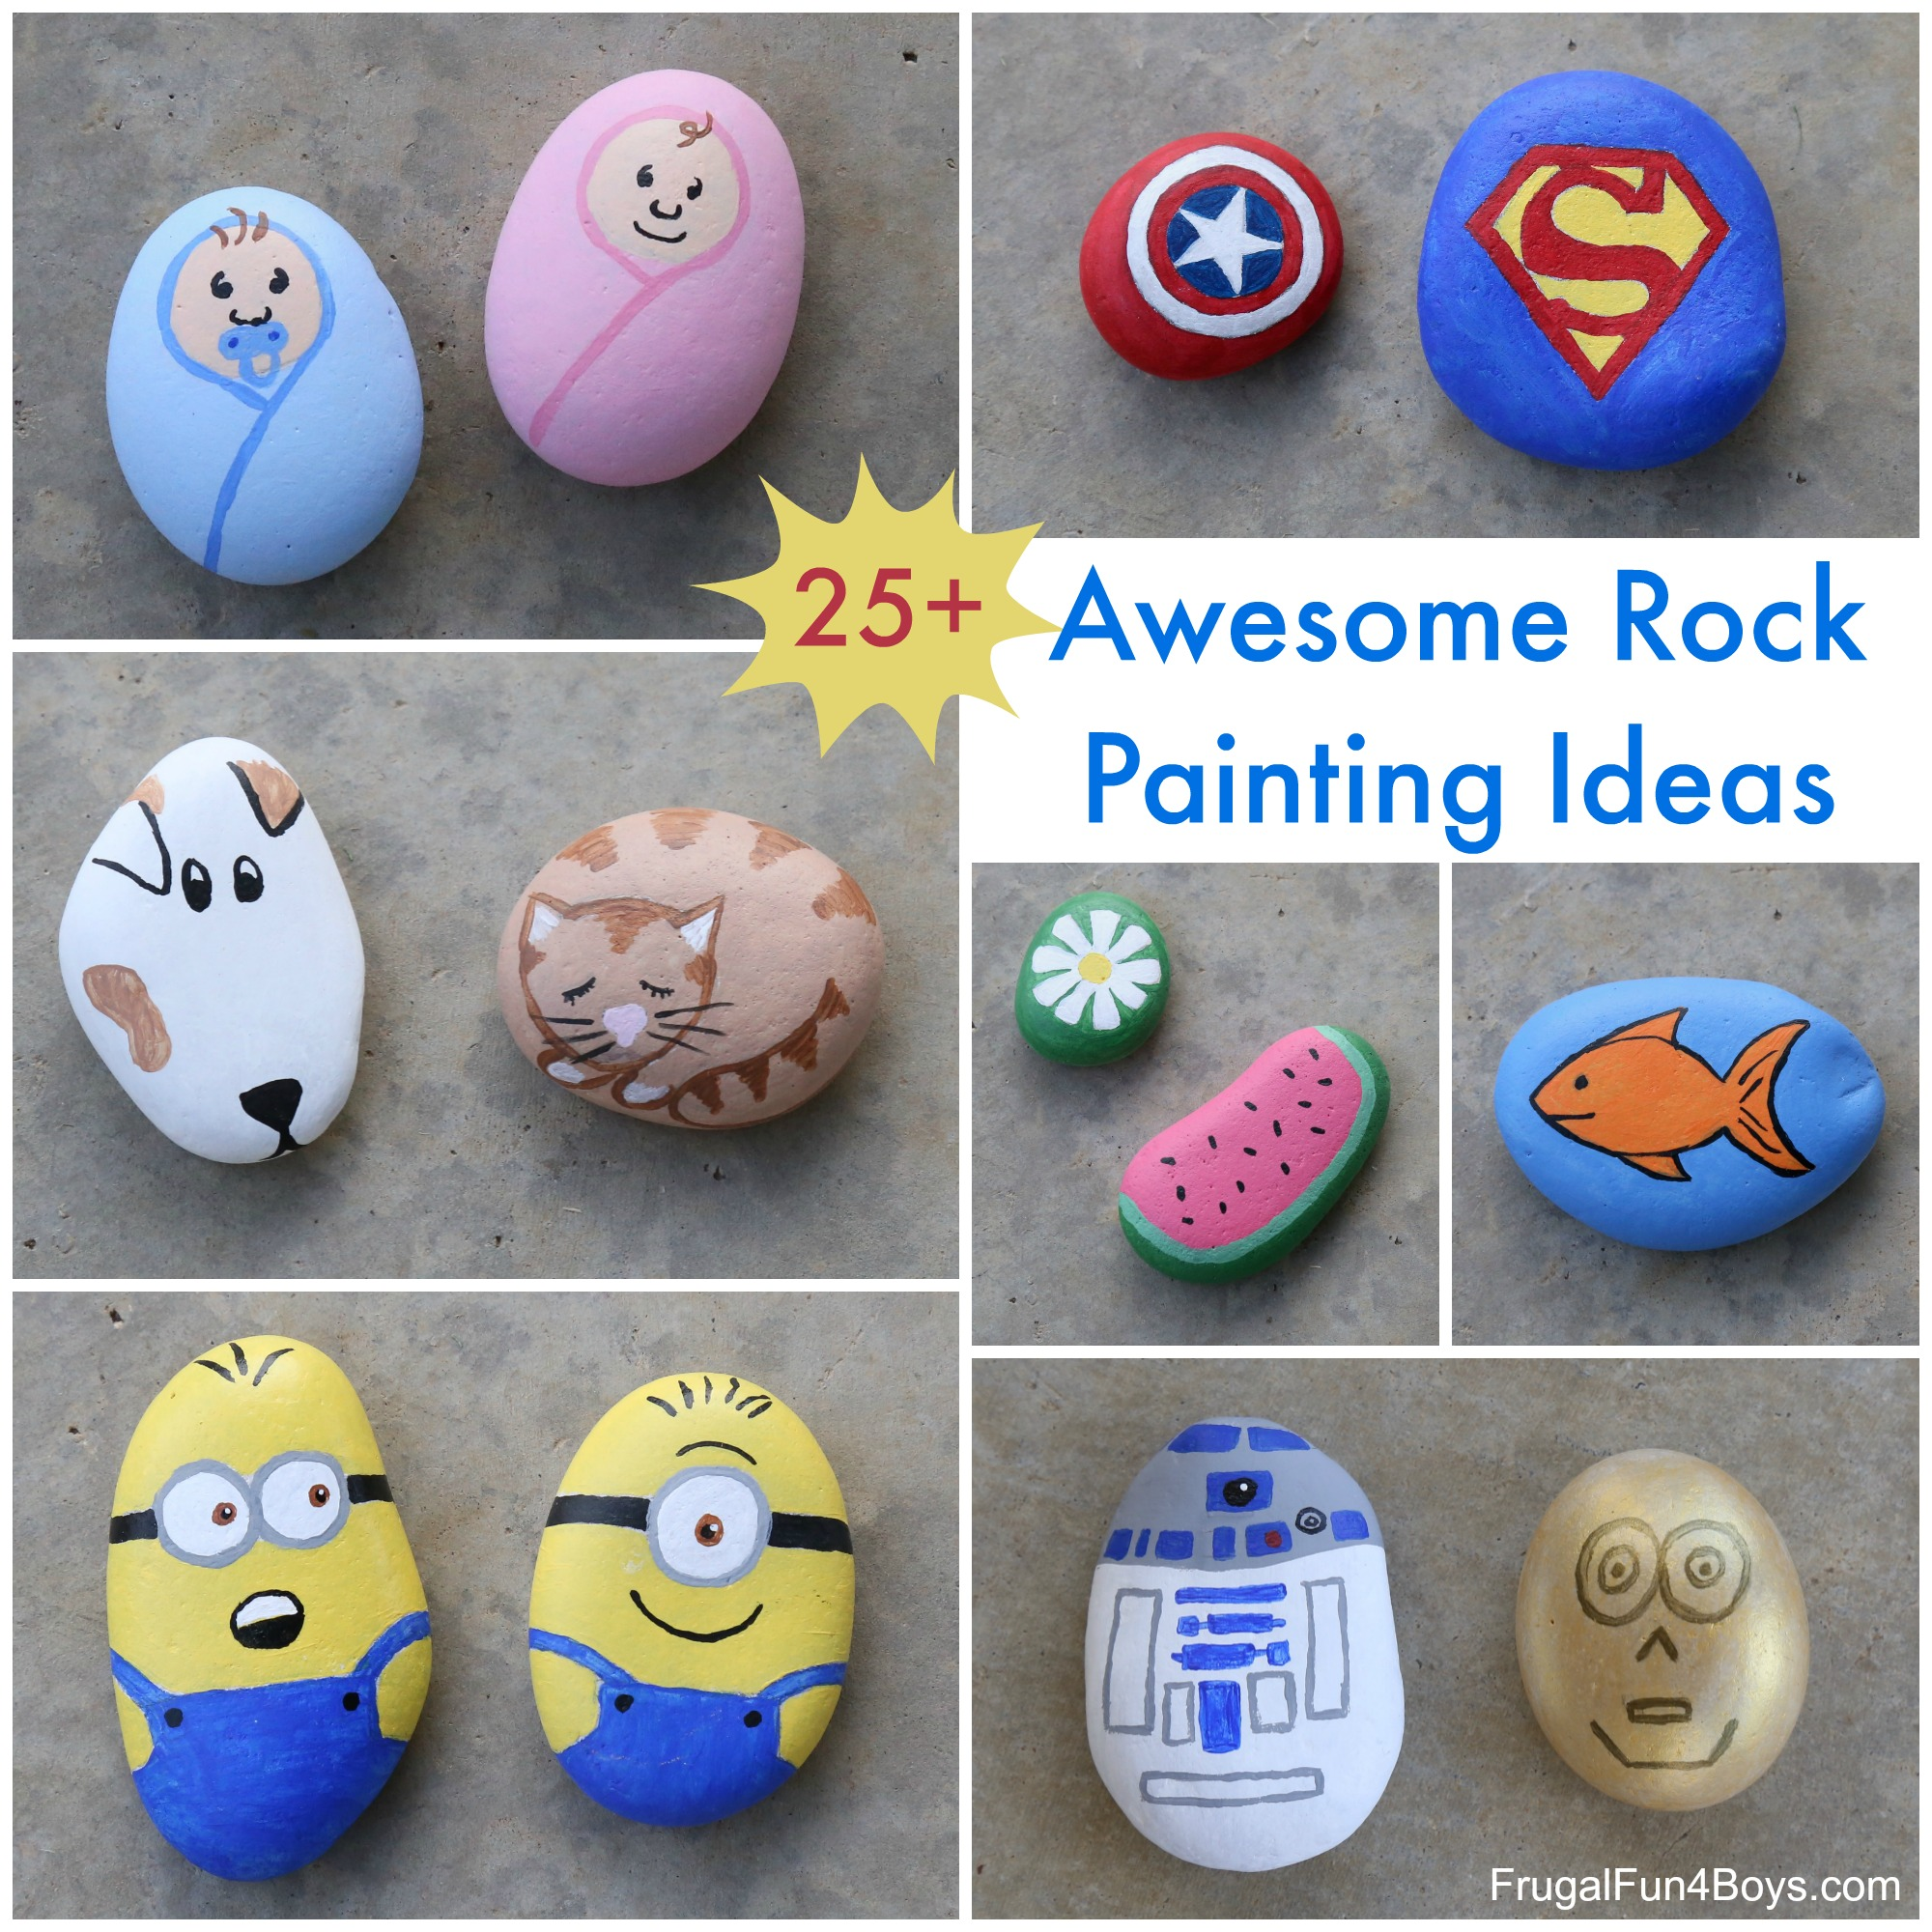 25+ Awesome Rock Painting Ideas , Frugal Fun For Boys and Girls